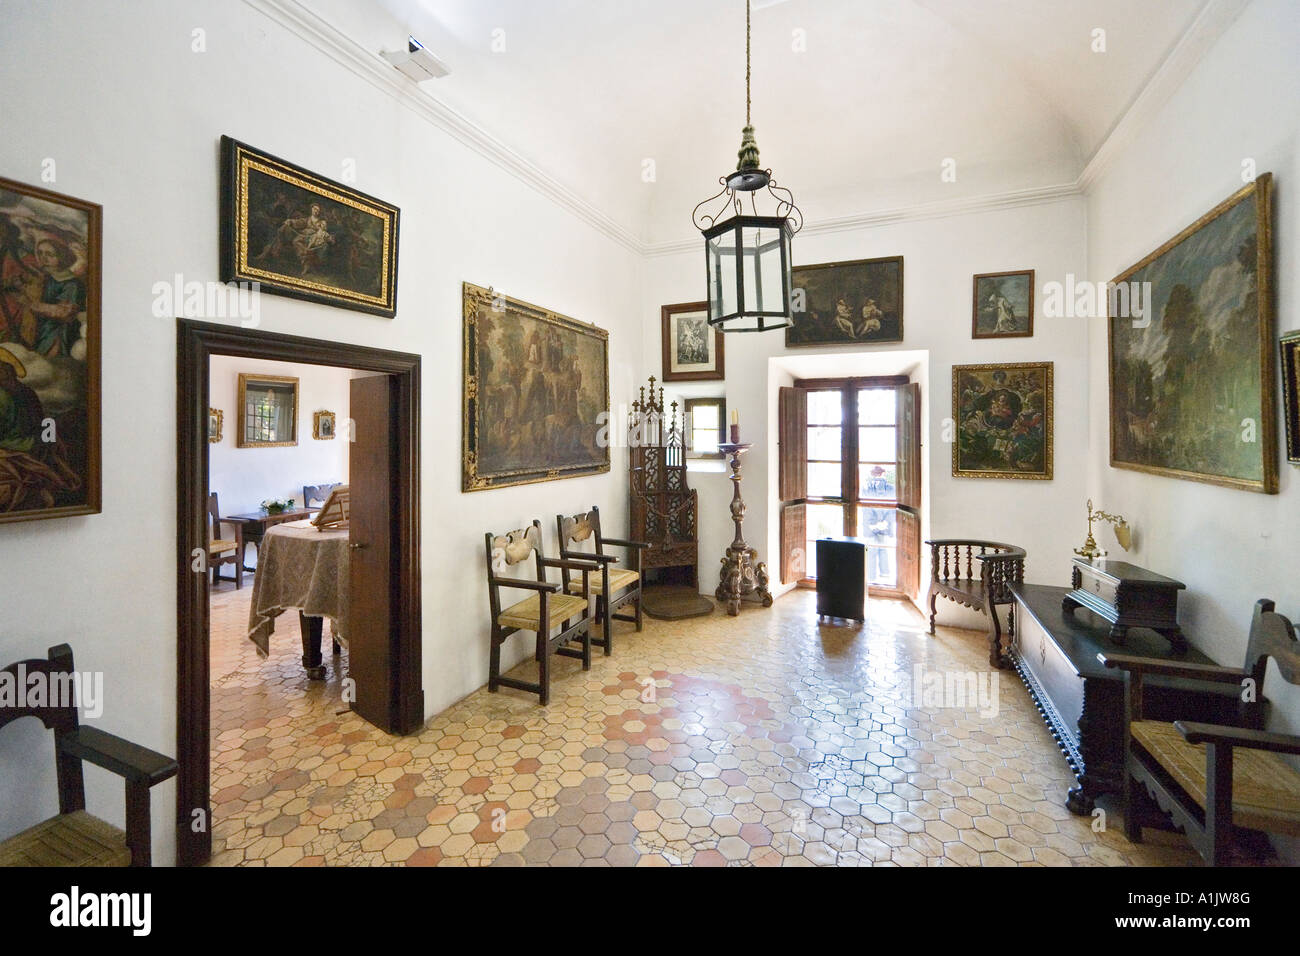 Rooms used by Frederic Chopin, Real Cartuja (Royal Carthusian Monastery), Valldemossa, Mallorca, Balearic Islands, - Stock Image